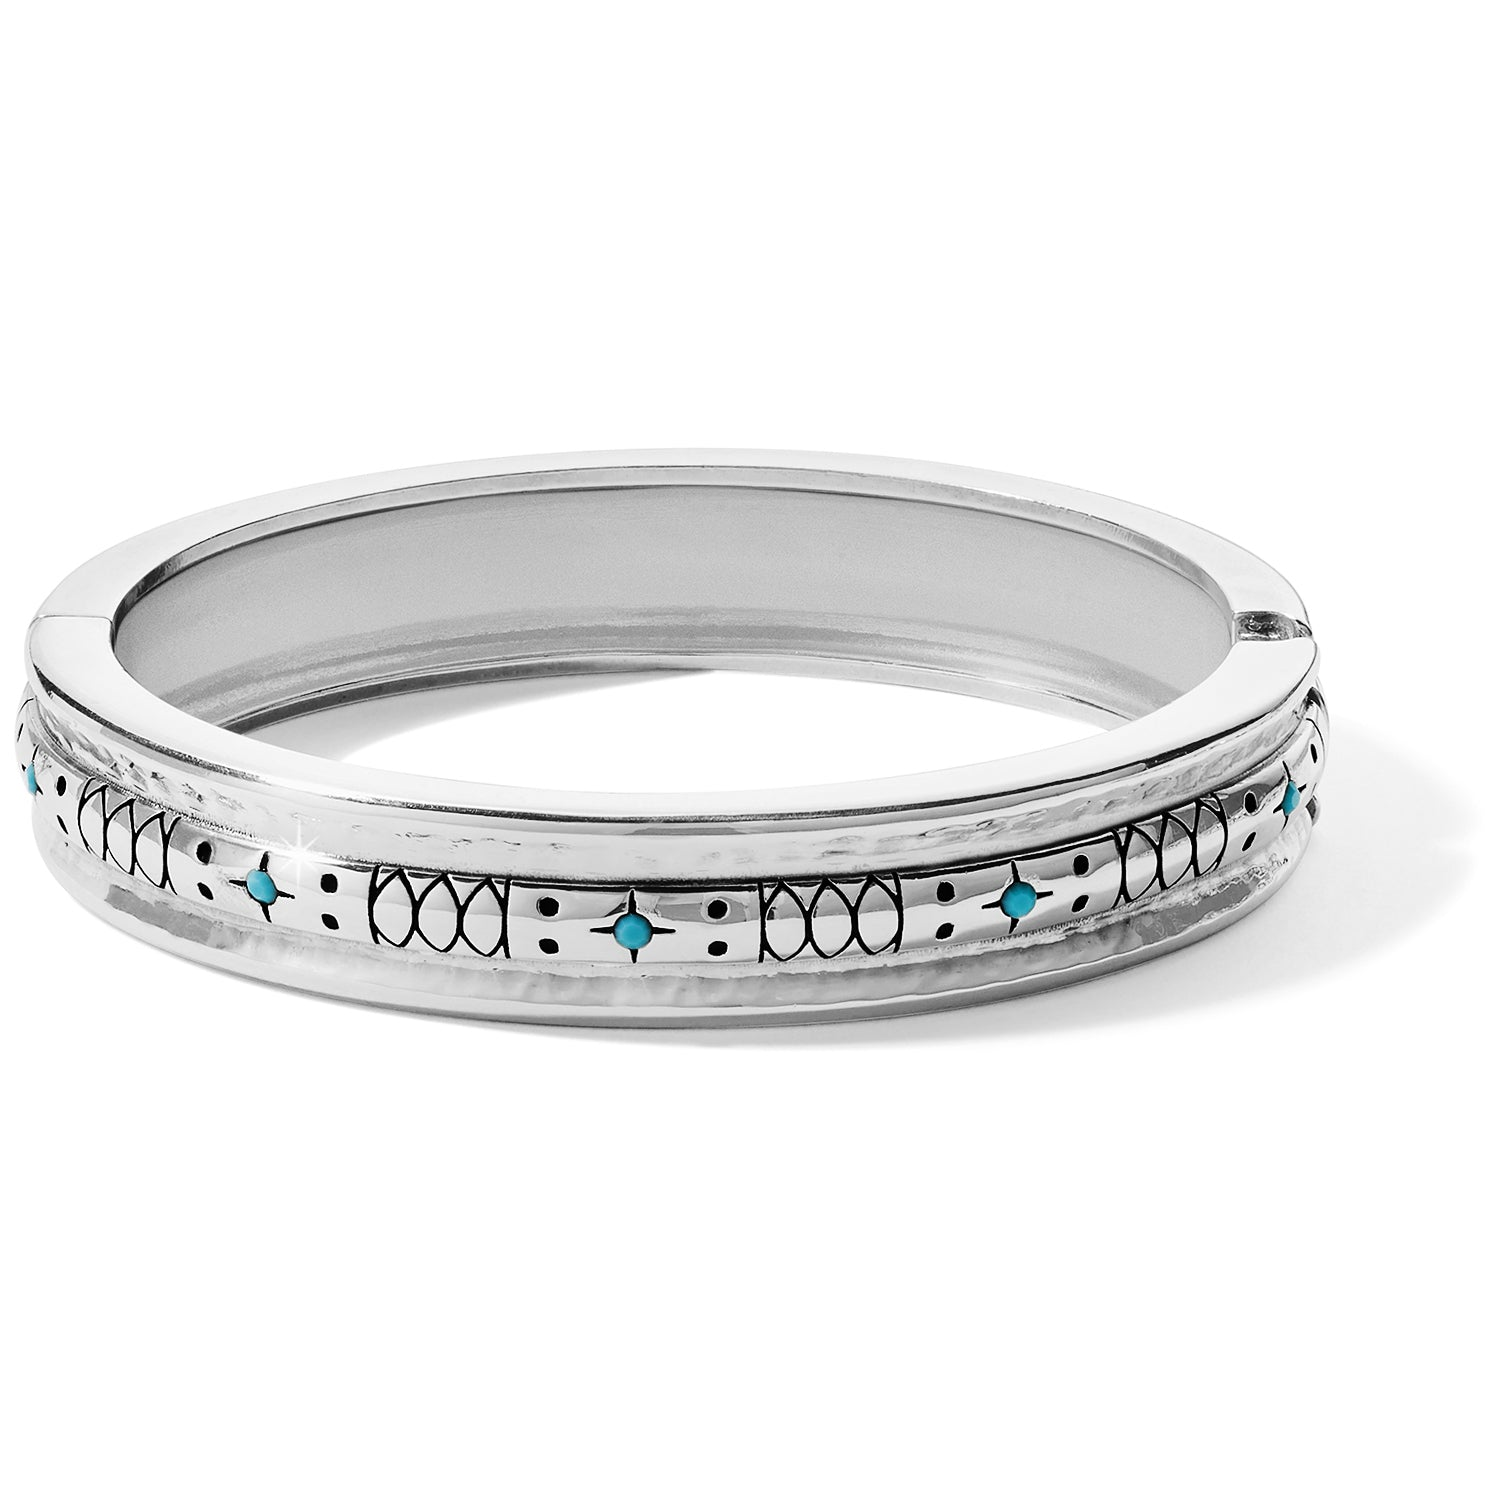 "The Brighton Marrakesh Mystique Hinged Bangle is a silver etched hinged bangle accented with turquoise colored stones is perfect to wear alone or stack with other textured bangles. Width: 1/2"" Closure: Hinged Diameter: 2 3/8"" Finish: Silver plated Features: Turquoise"